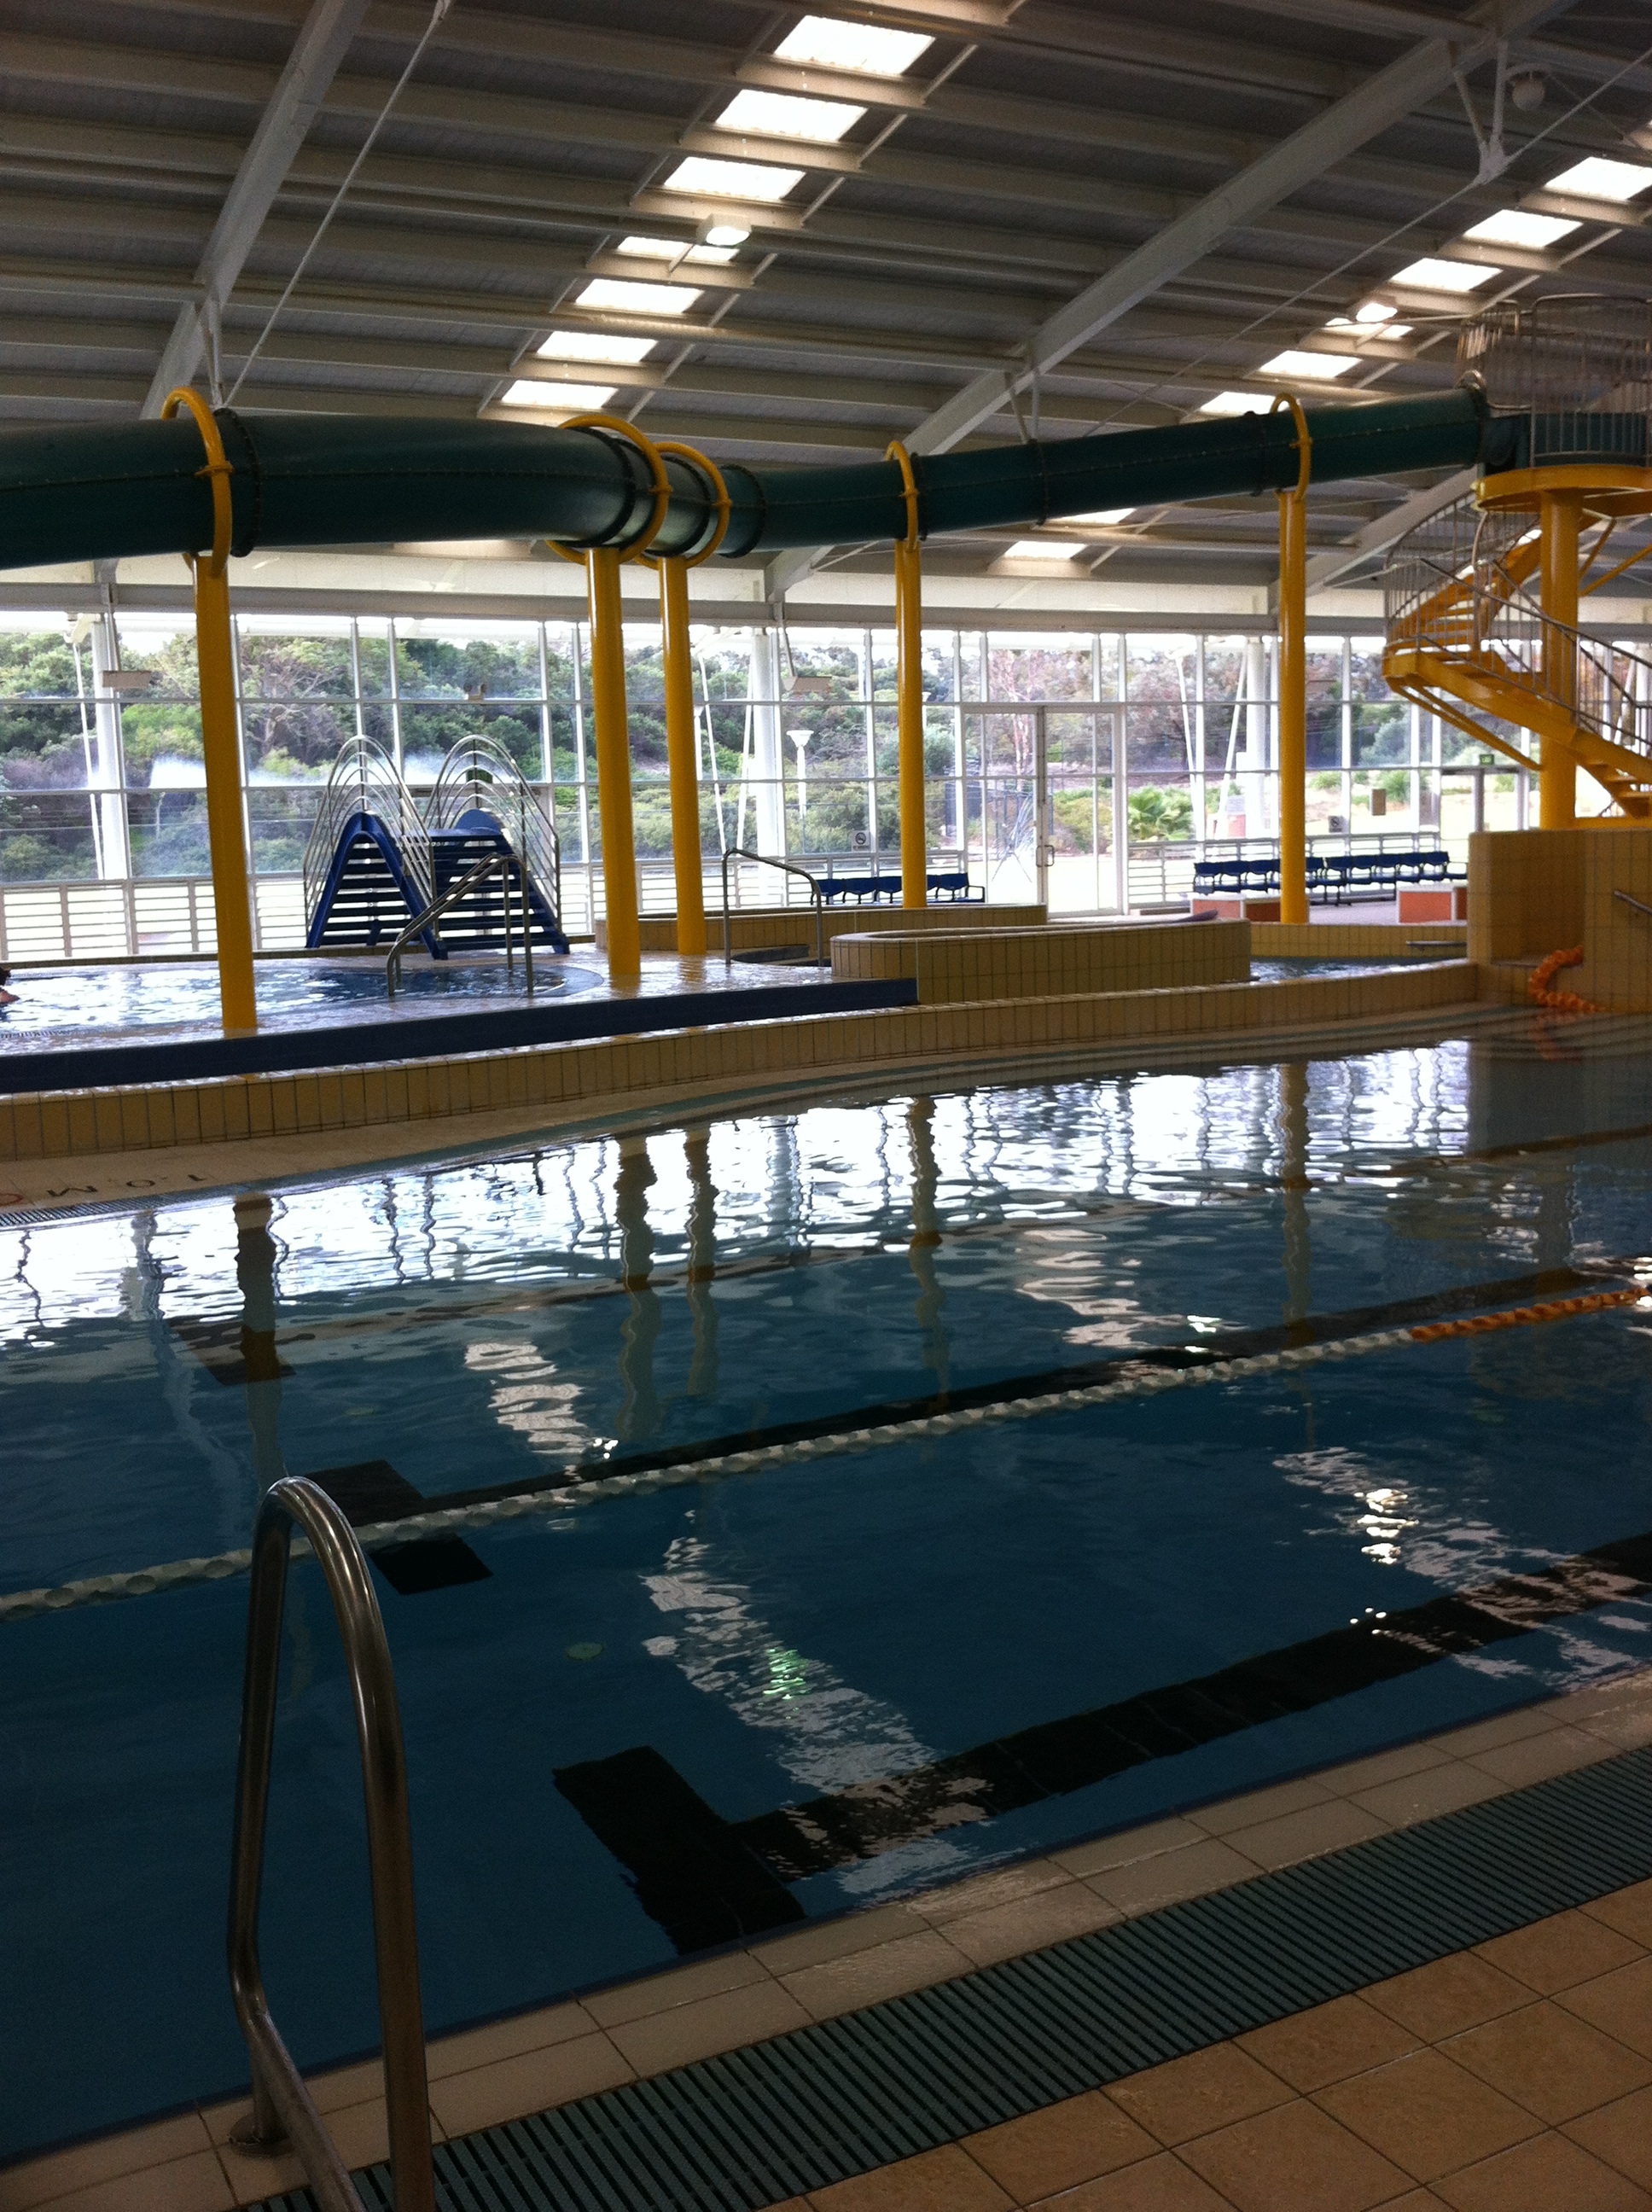 joondalup arena swimming pool perth